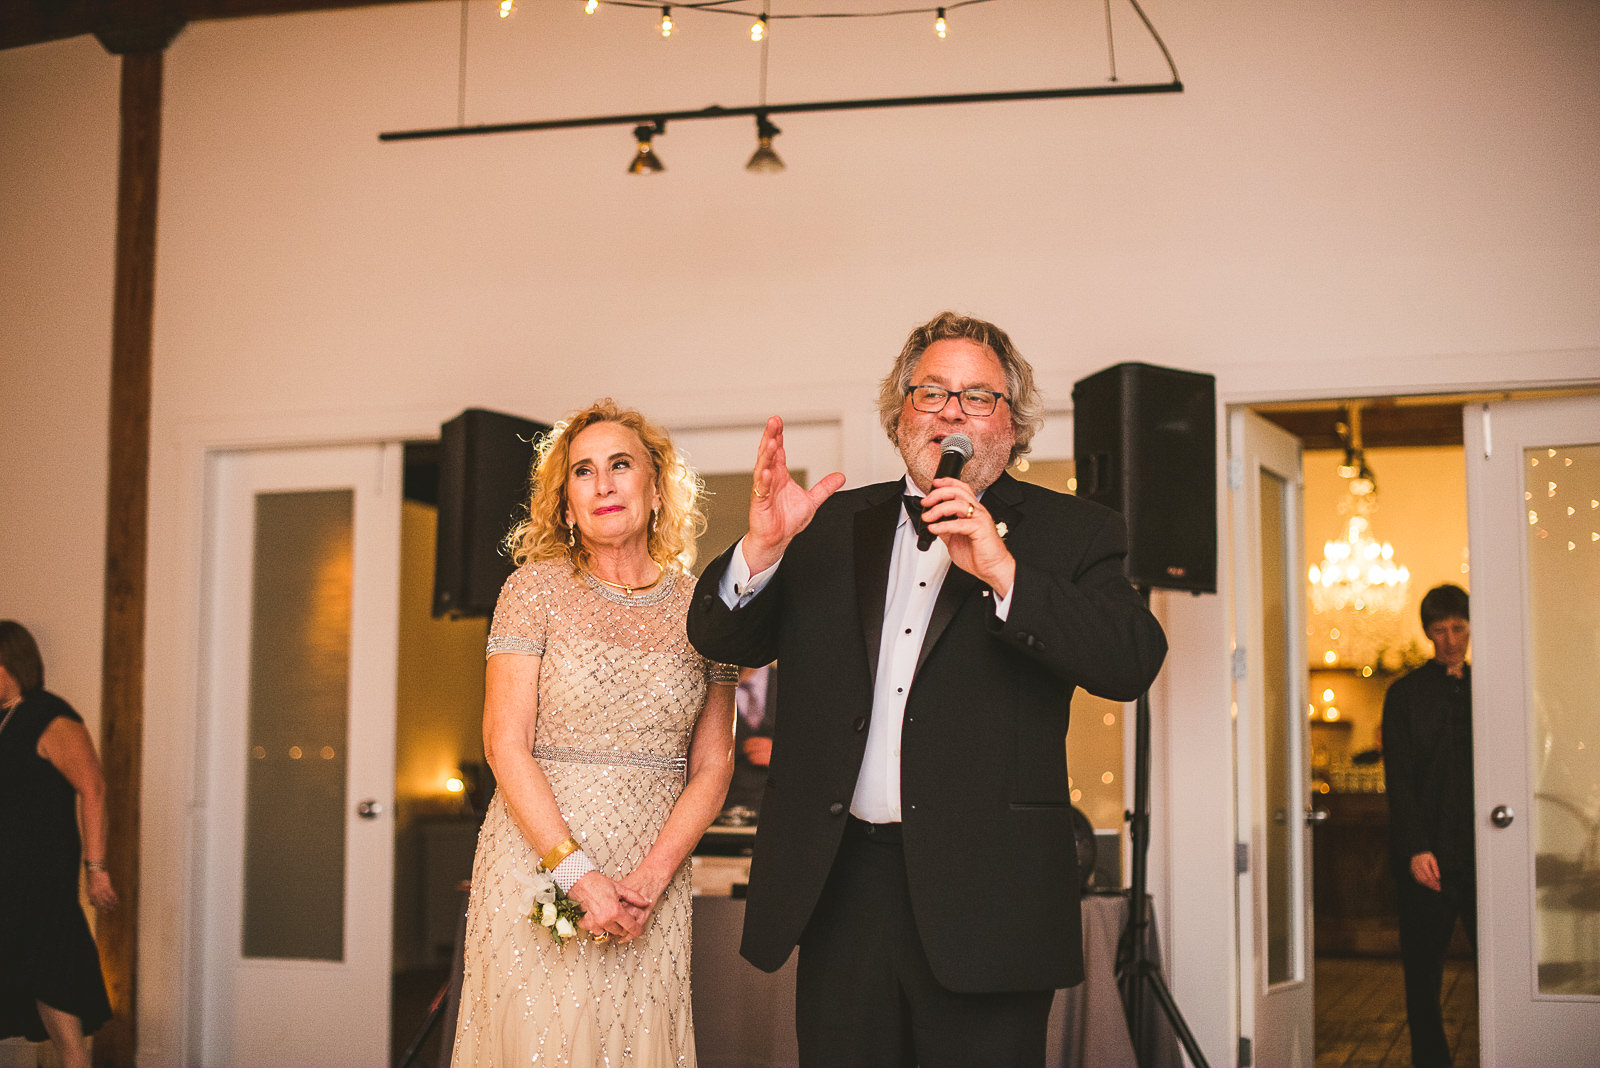 67 speeches at wedding - Chicago Wedding Photography at Gallery 1028 // Courtnie + David